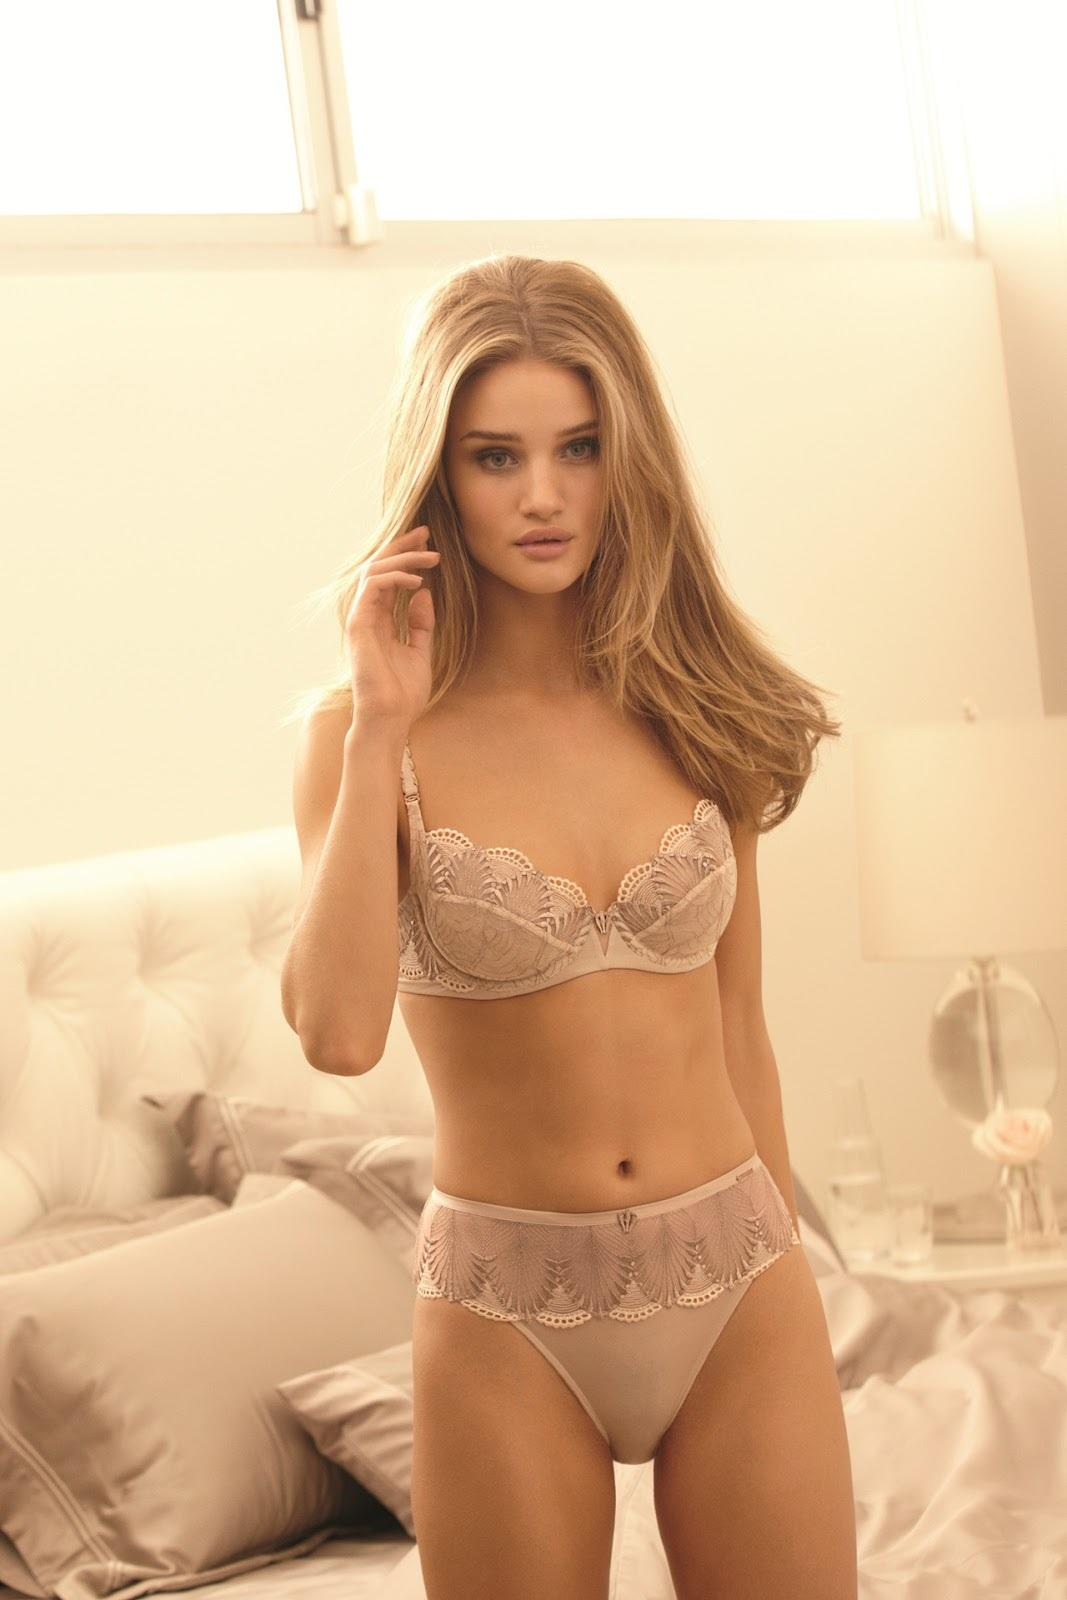 Rhwhiteley Aug Pr Rosie Huntington Whiteley Underwear